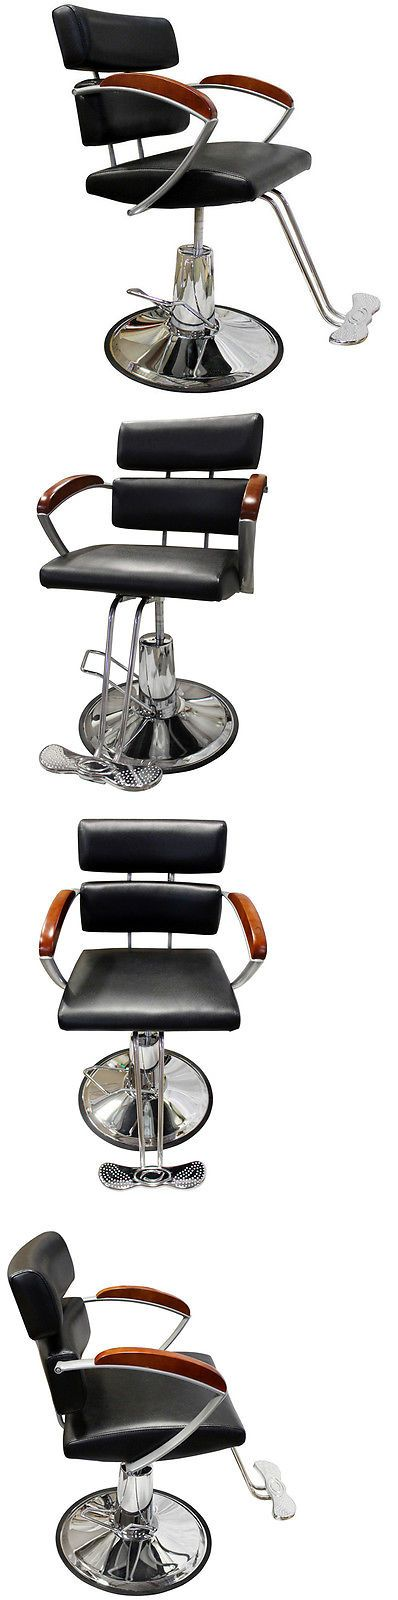 Stylist Stations and Furniture: Professional Chrome Hydraulic Barber Chair Styling Hair Beauty Salon Equipment -> BUY IT NOW ONLY: $89.95 on eBay!